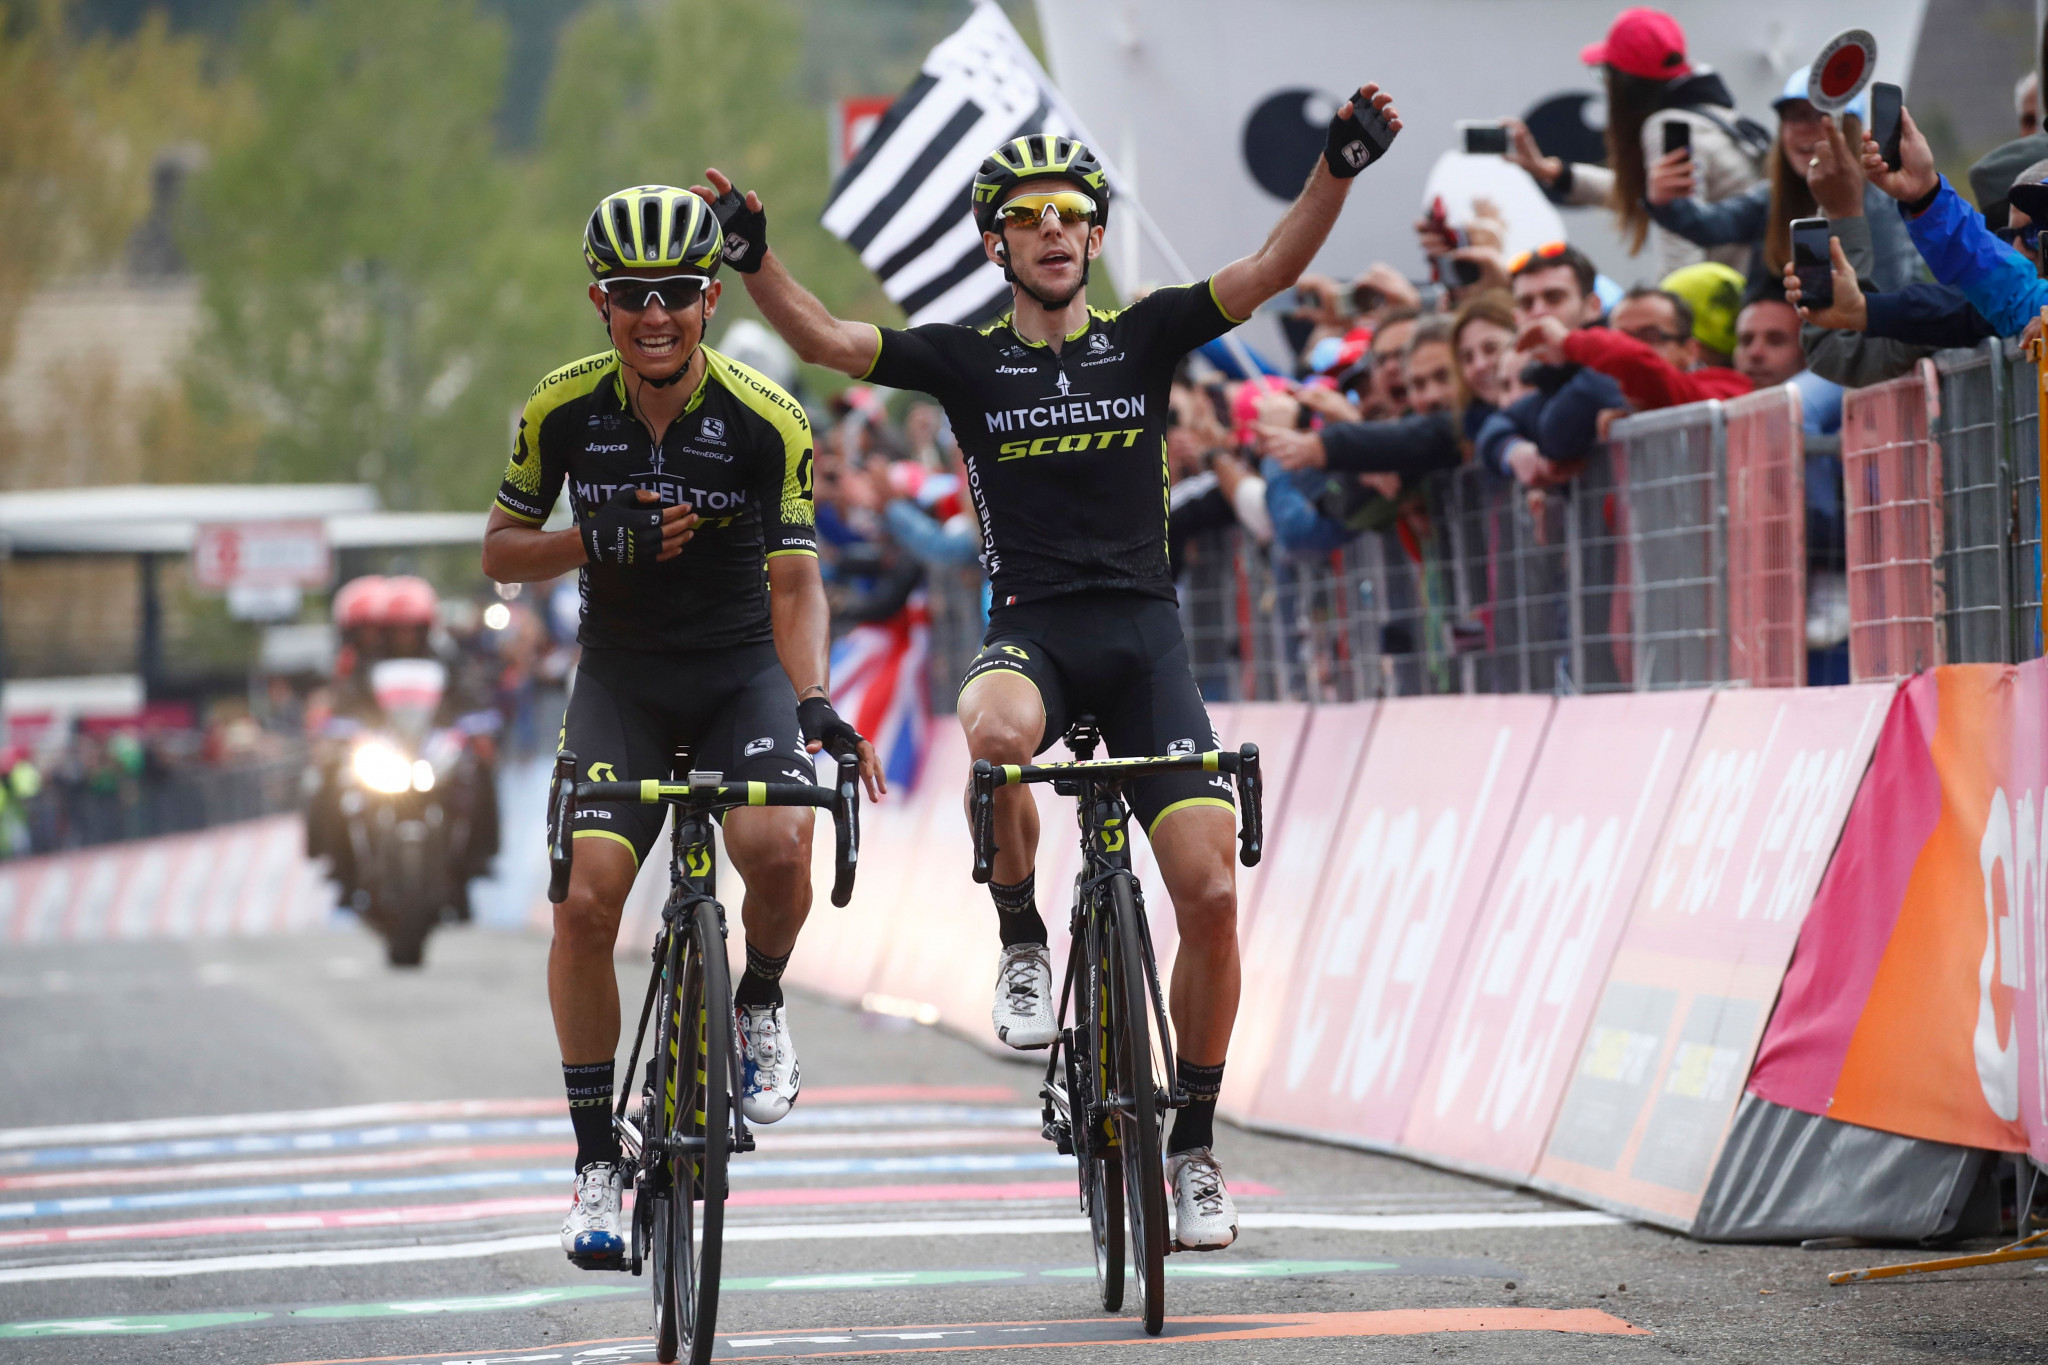 Simon Yates wins stage nine to extend lead as Chris Froome fades